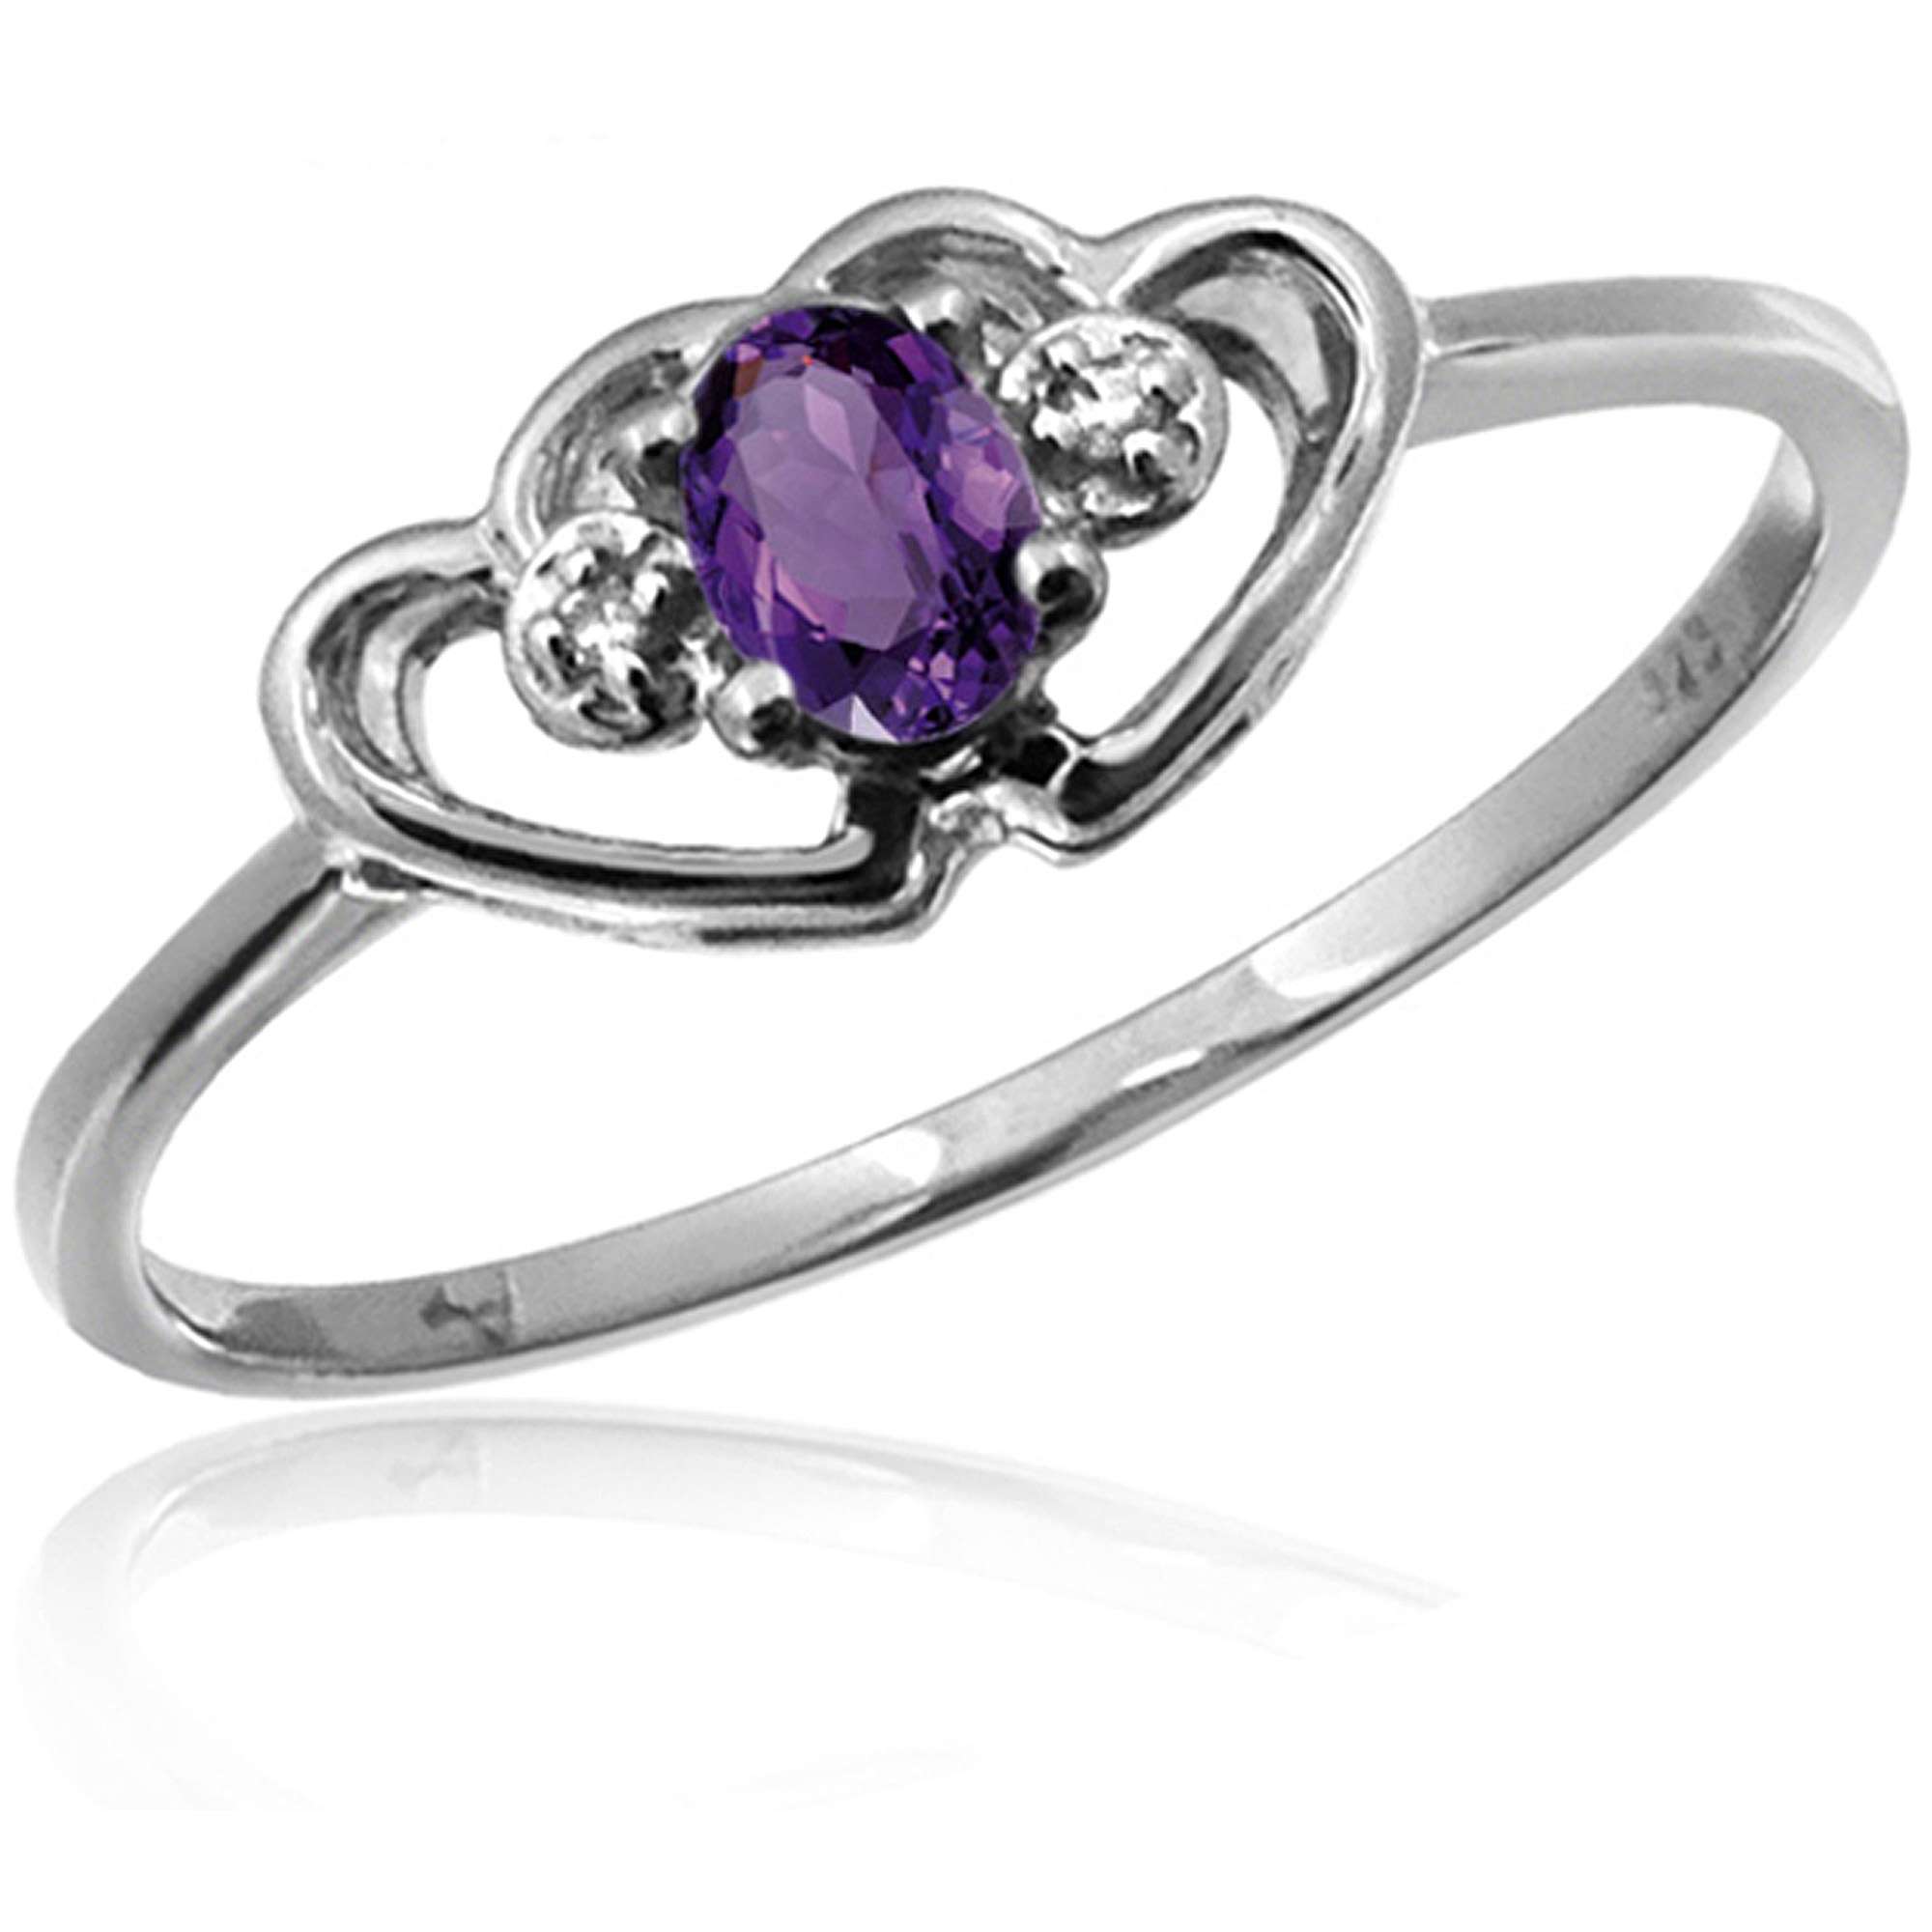 JewelersClub 0.15 Carat T.G.W. Amethyst Gemstone and White Diamond Accent Ring